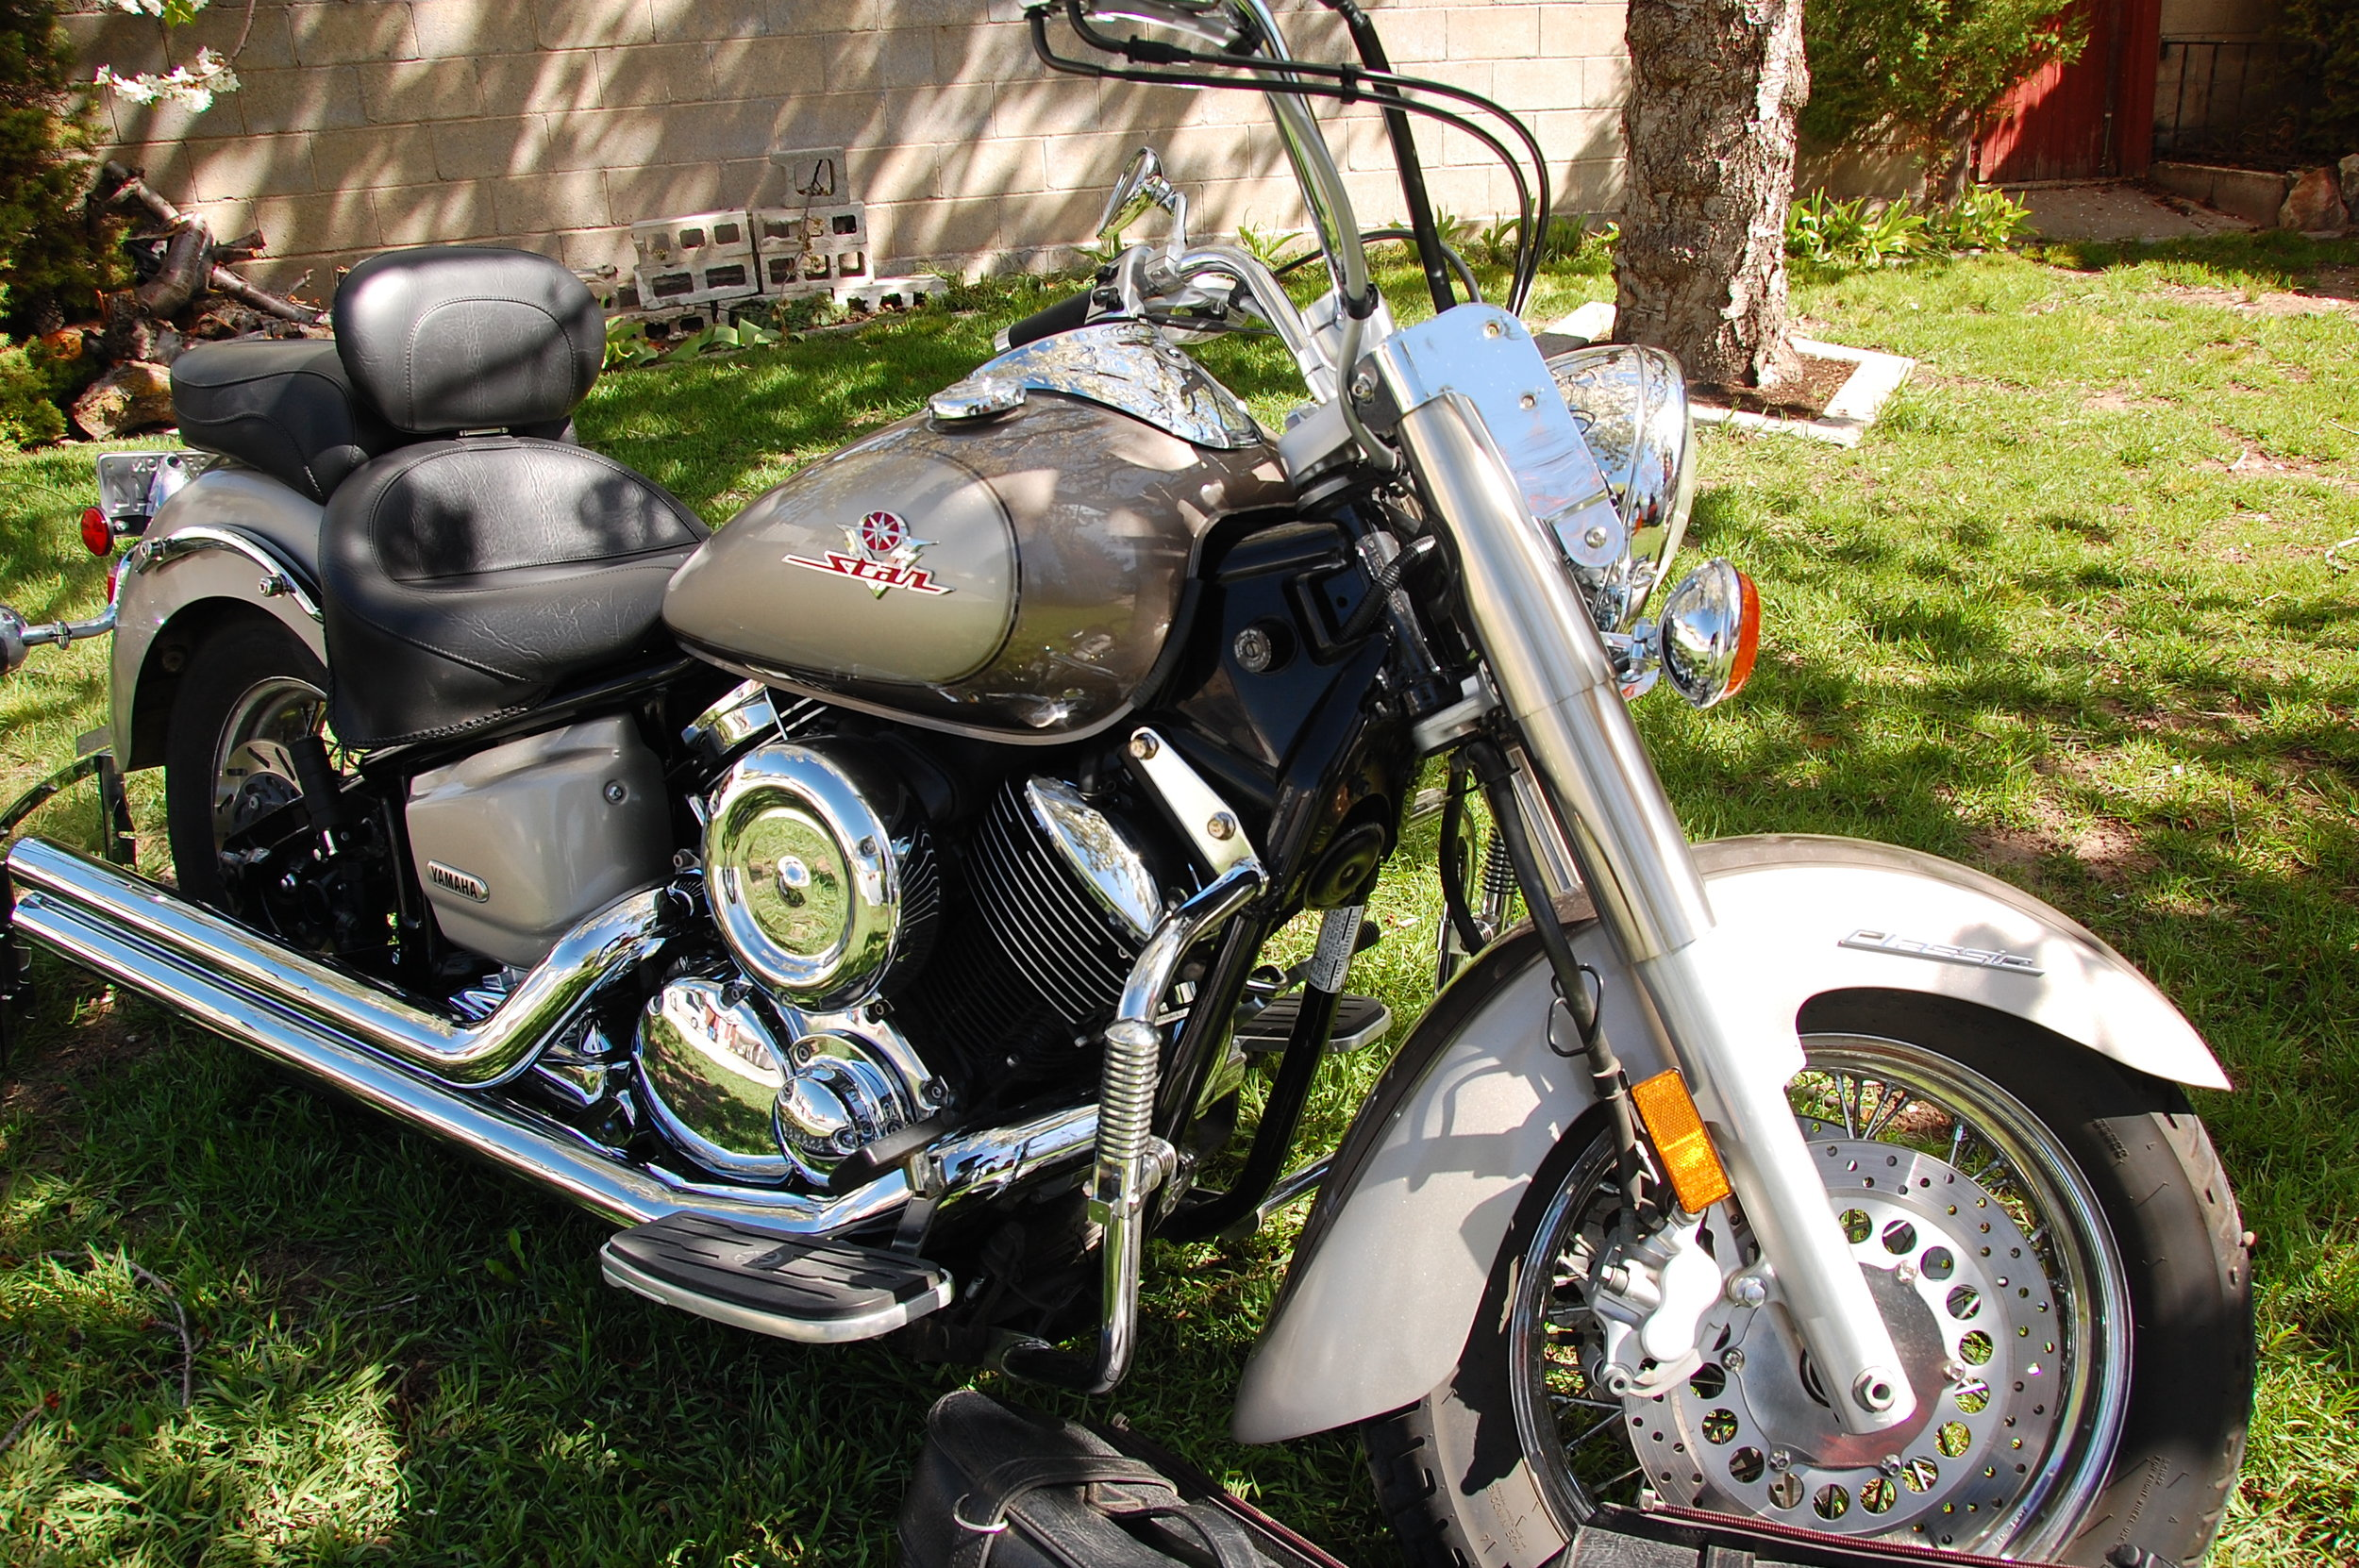 Here is my first motorcycle, with which I ruthlessly murdered many traffic cones. (Provo, Utah; Apr 2010)